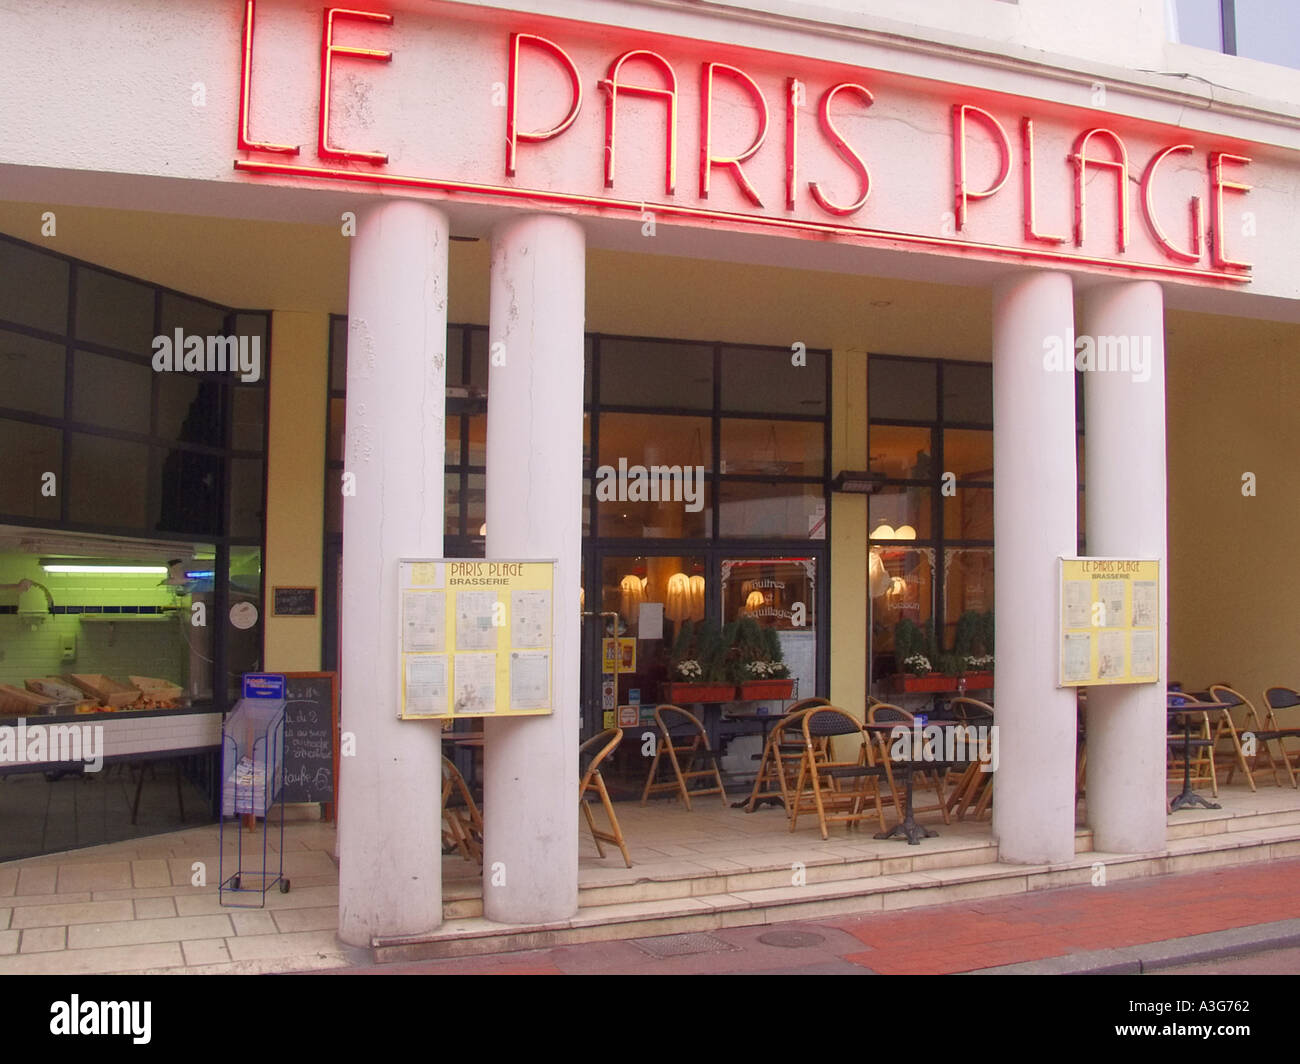 france nord pas de calais le touquet le paris plage restaurant stock photo royalty free image. Black Bedroom Furniture Sets. Home Design Ideas